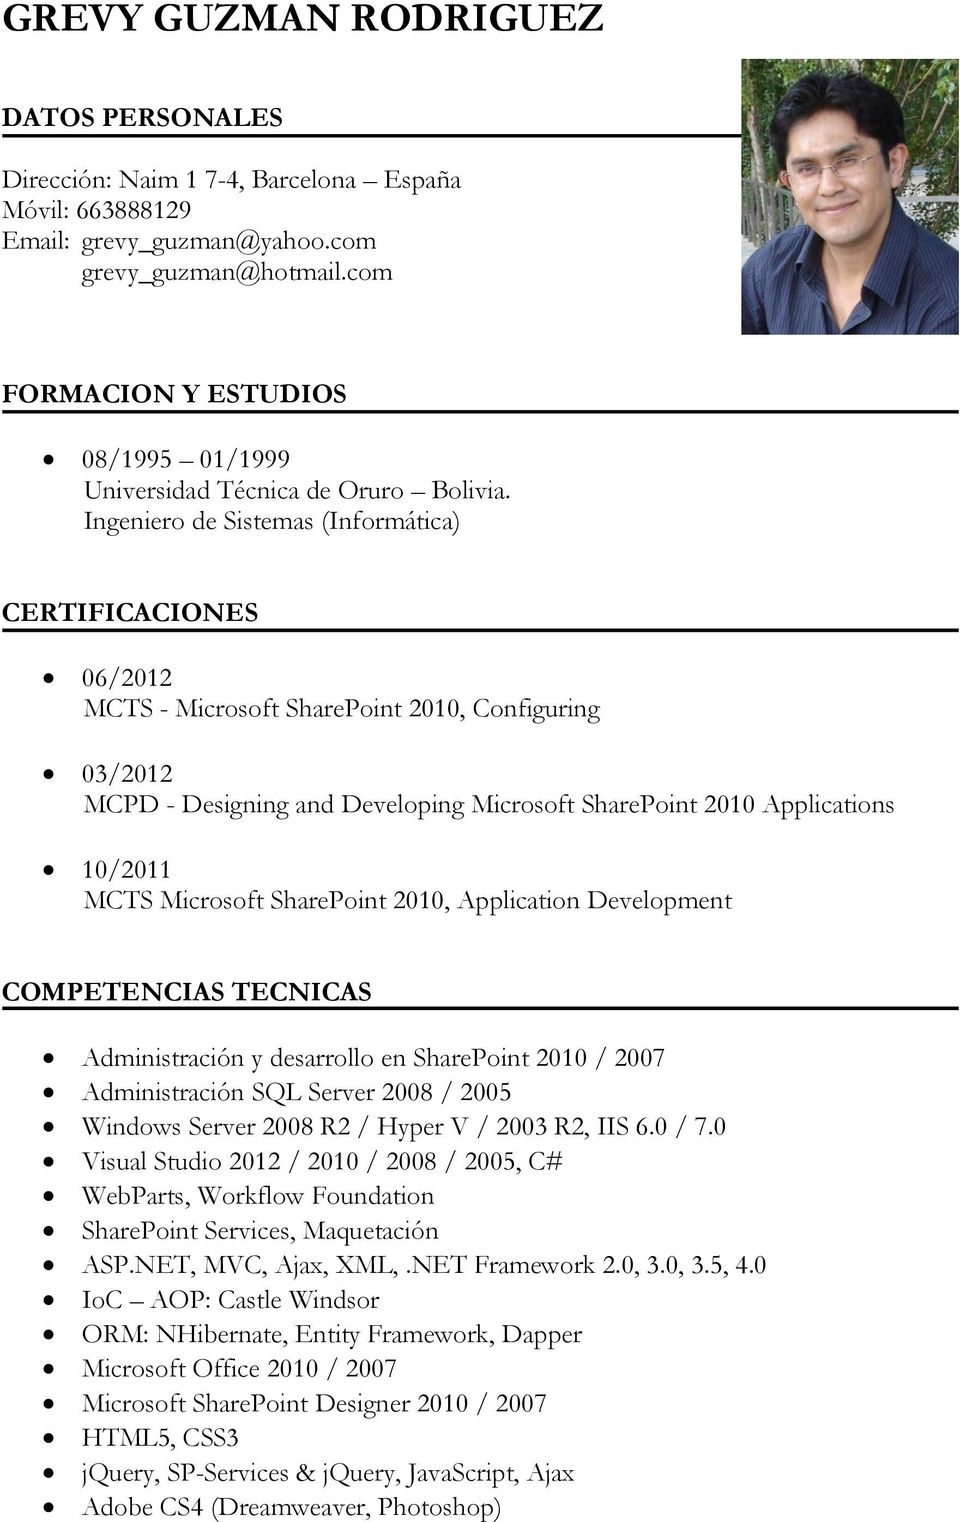 Ingeniero de Sistemas (Informática) CERTIFICACIONES 06/2012 MCTS - Microsoft SharePoint 2010, Configuring 03/2012 MCPD - Designing and Developing Microsoft SharePoint 2010 Applications 10/2011 MCTS